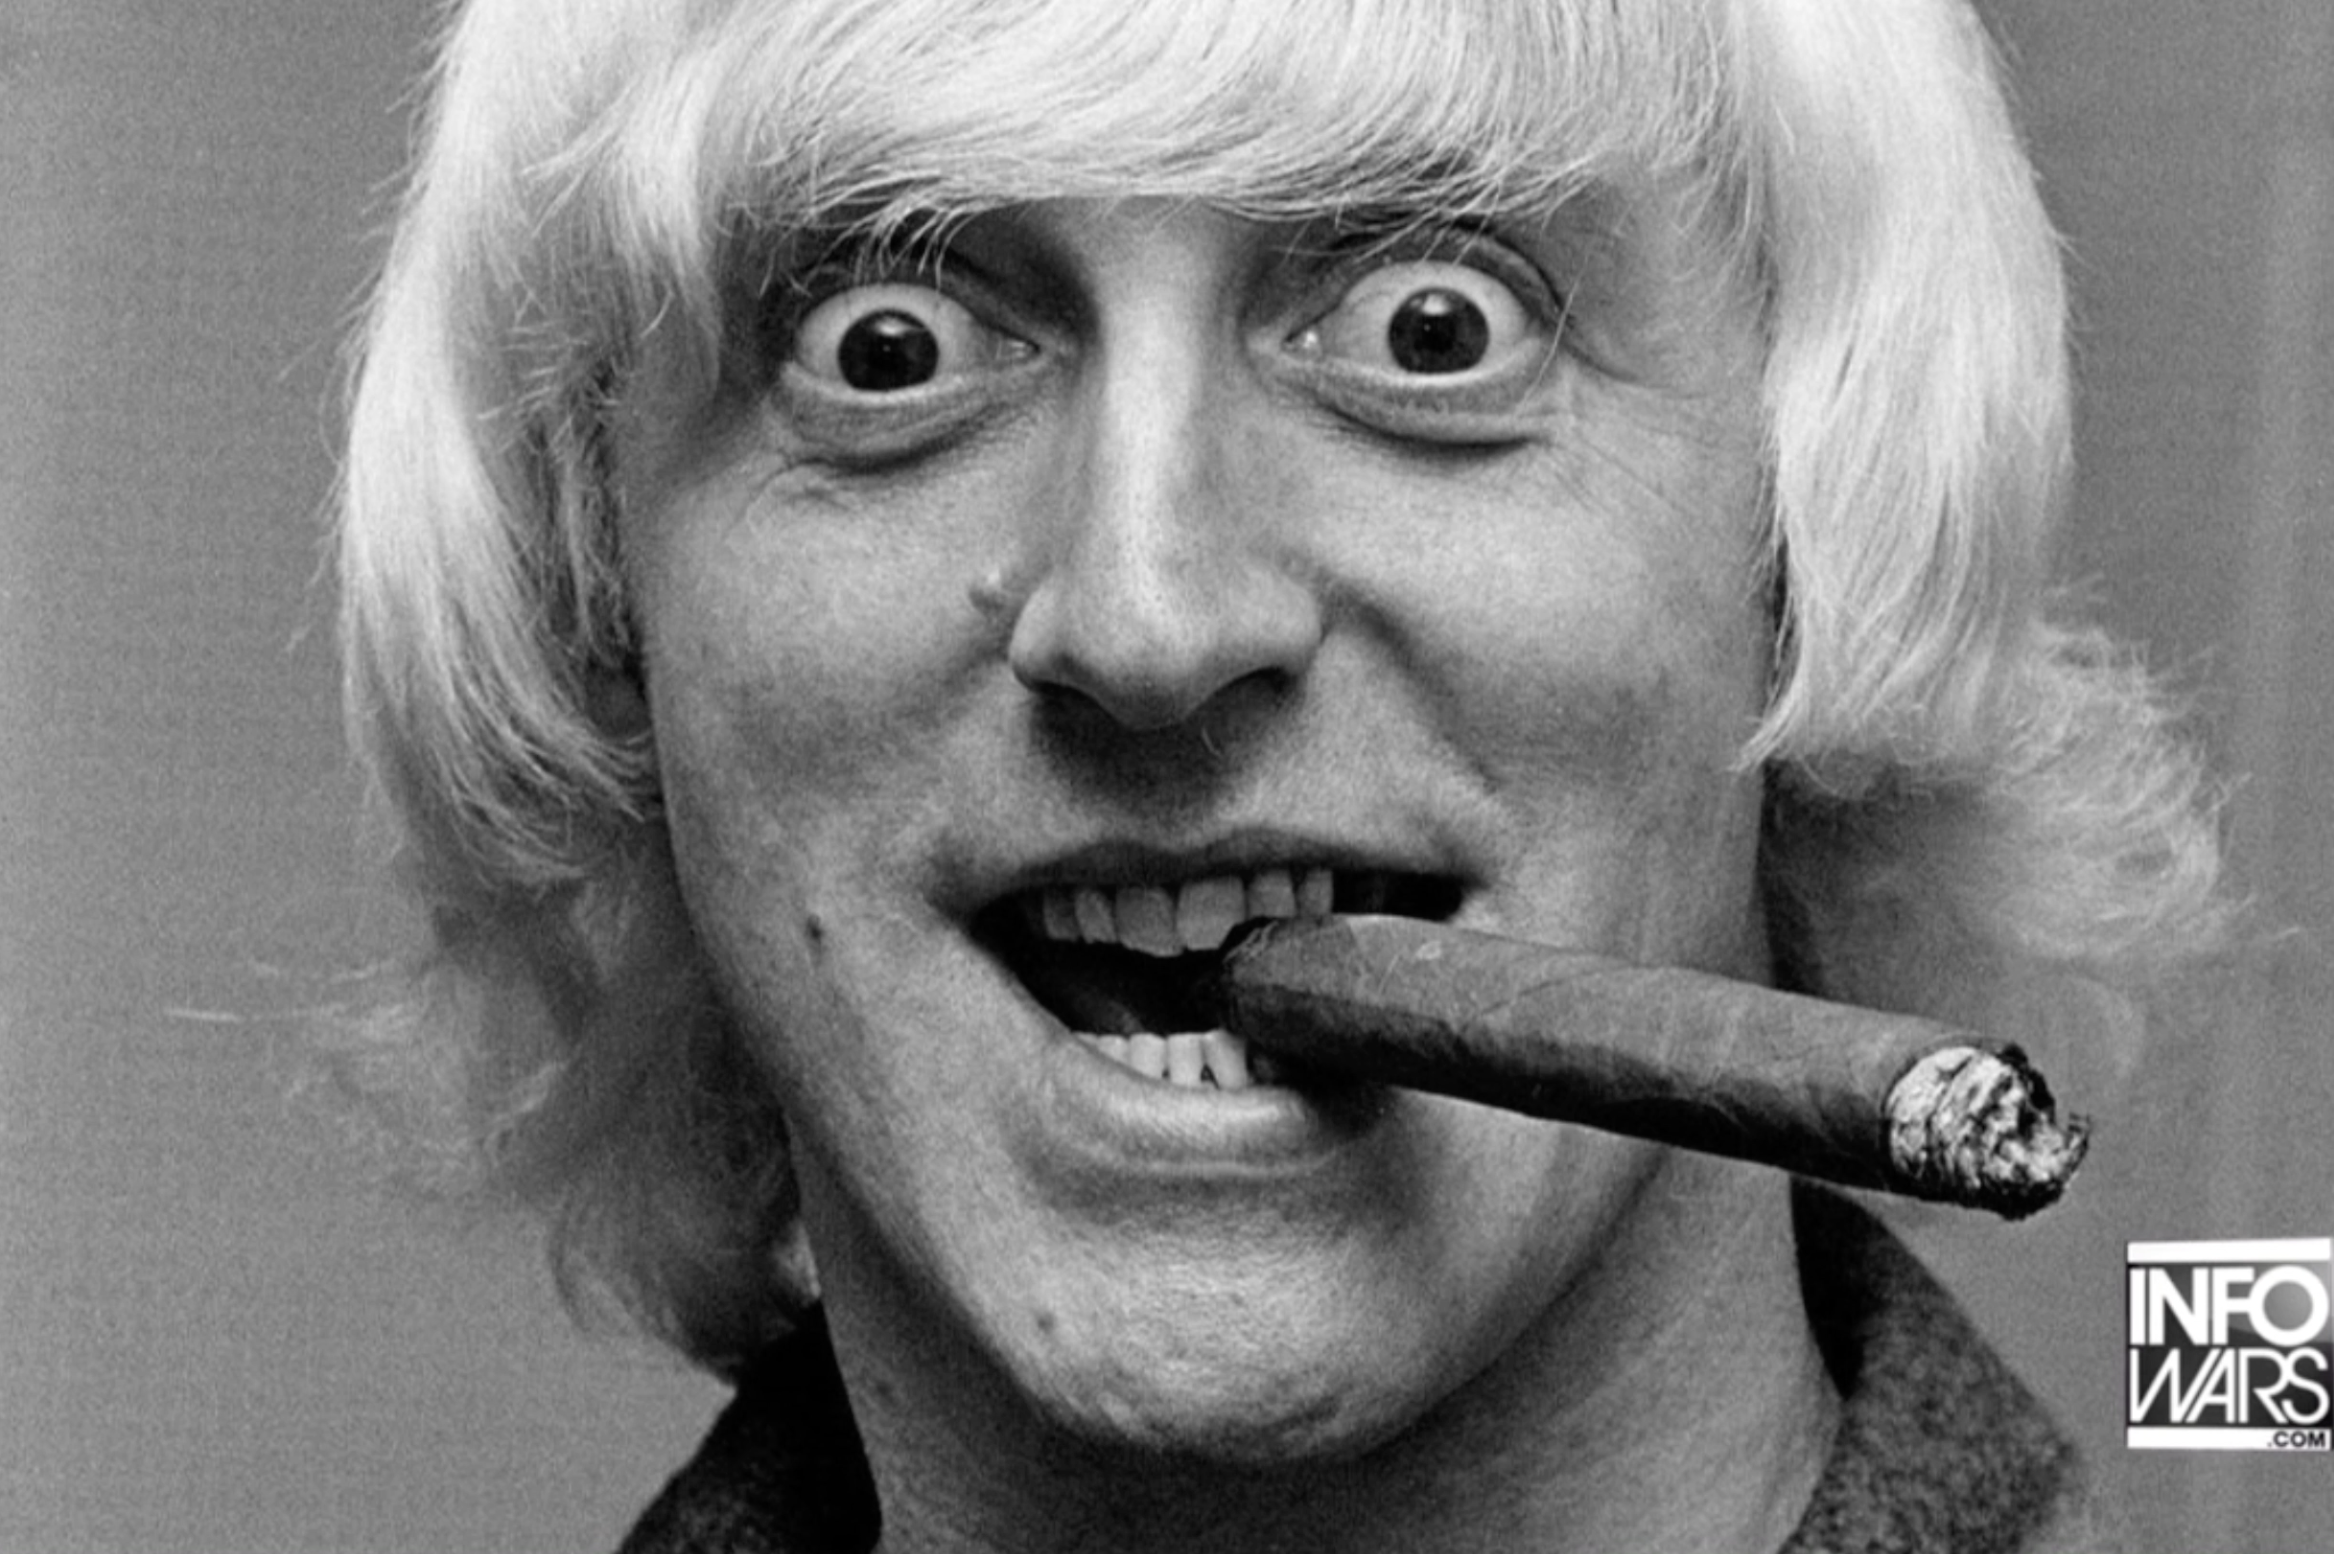 Jimmy pedofile Savile 11 25 2019